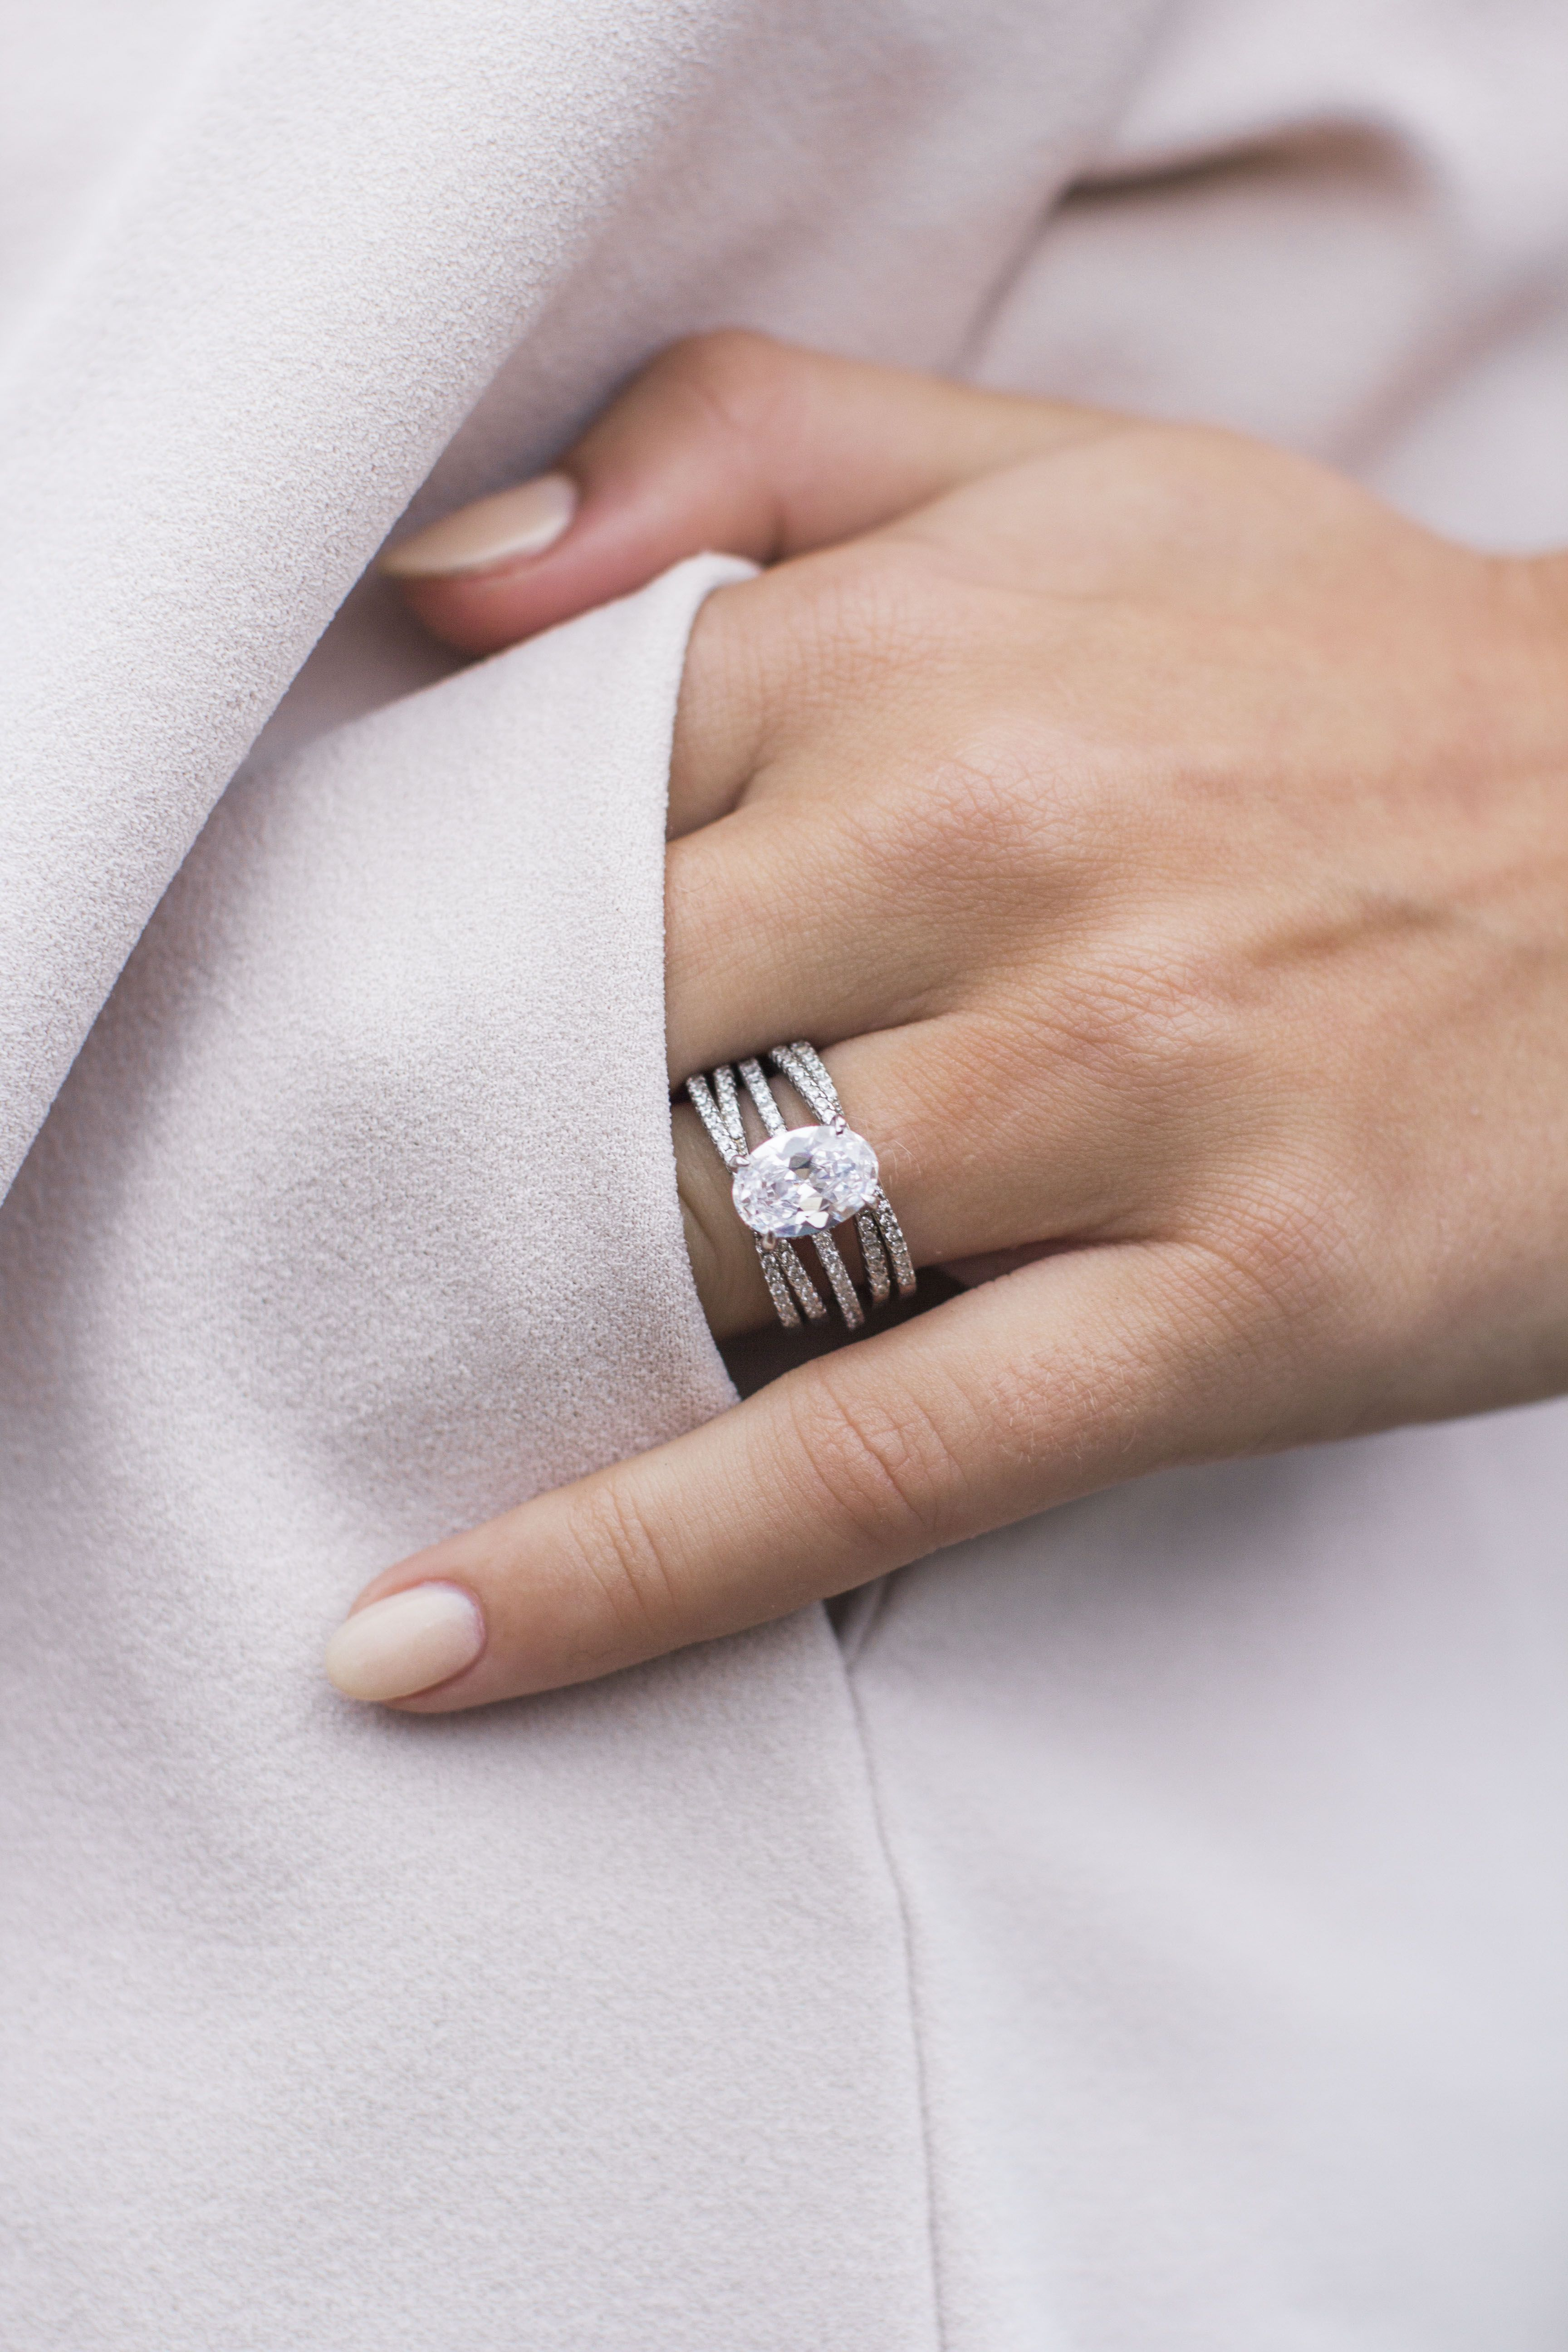 Everly Valentine S Collection Giveaway Simulated Diamond Rings Chic Rings Diamond Stacking Rings